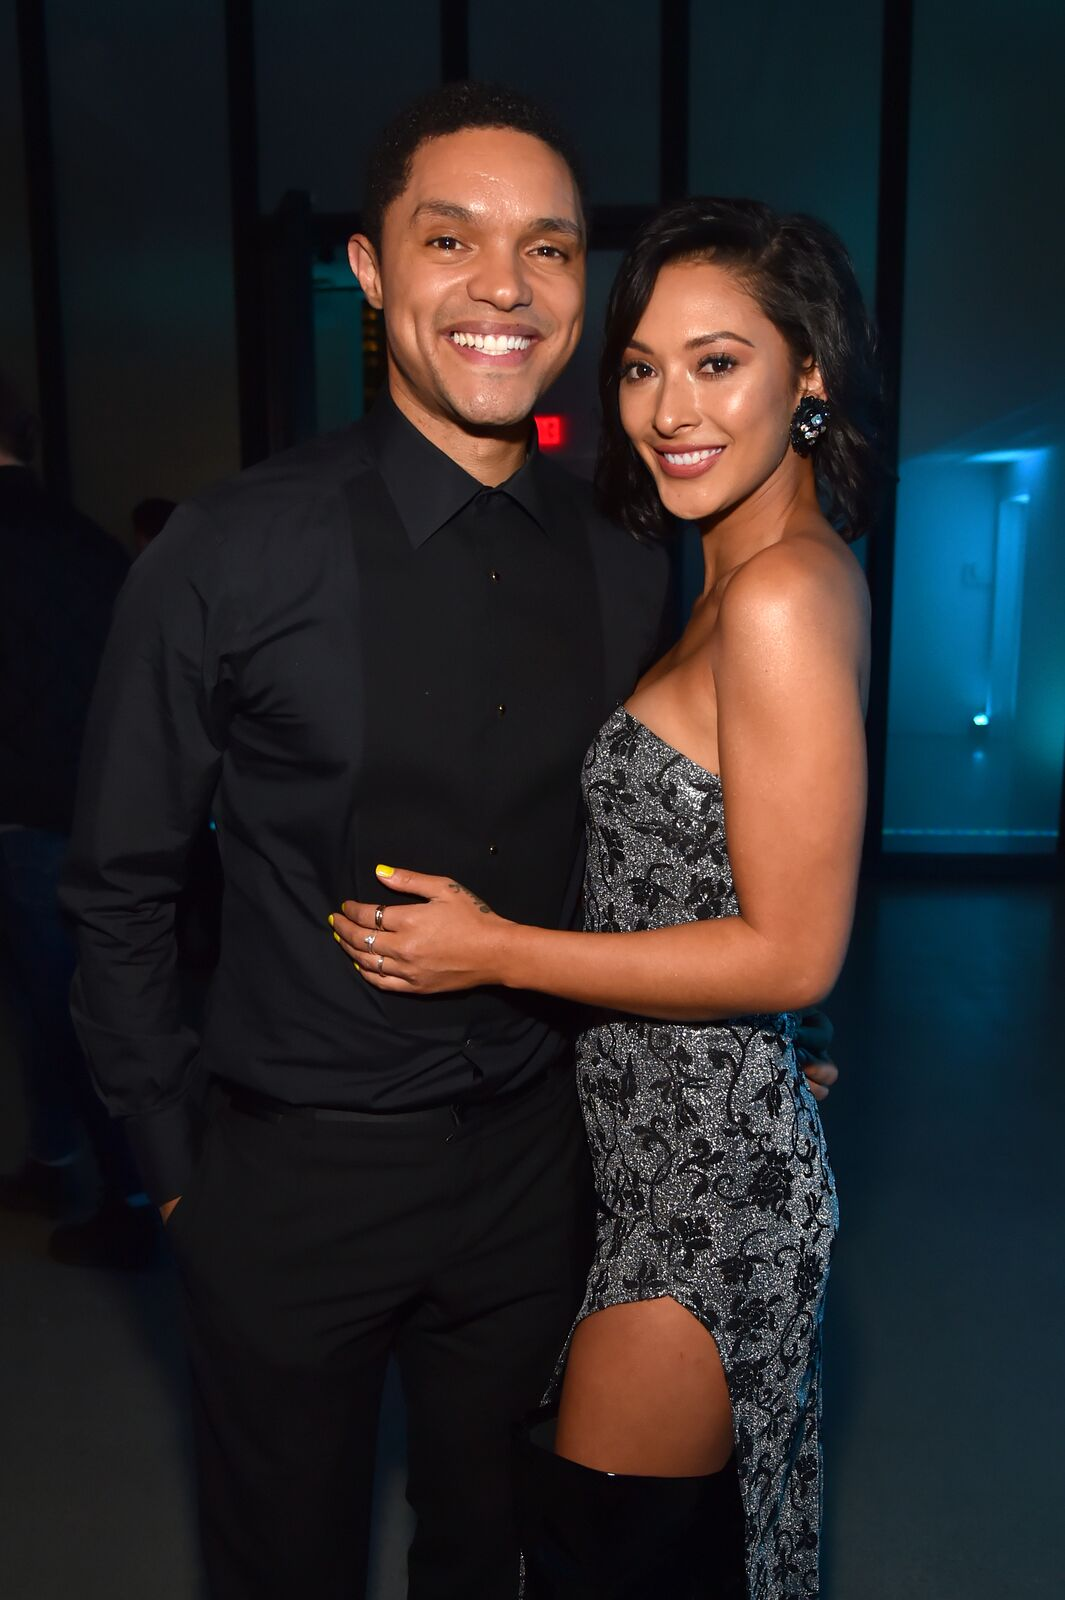 Trevor Noah and Jordyn Taylor at the Universal Music Group's 2018 After Party to celebrate the Grammy Awards in New York | Source: Getty Images